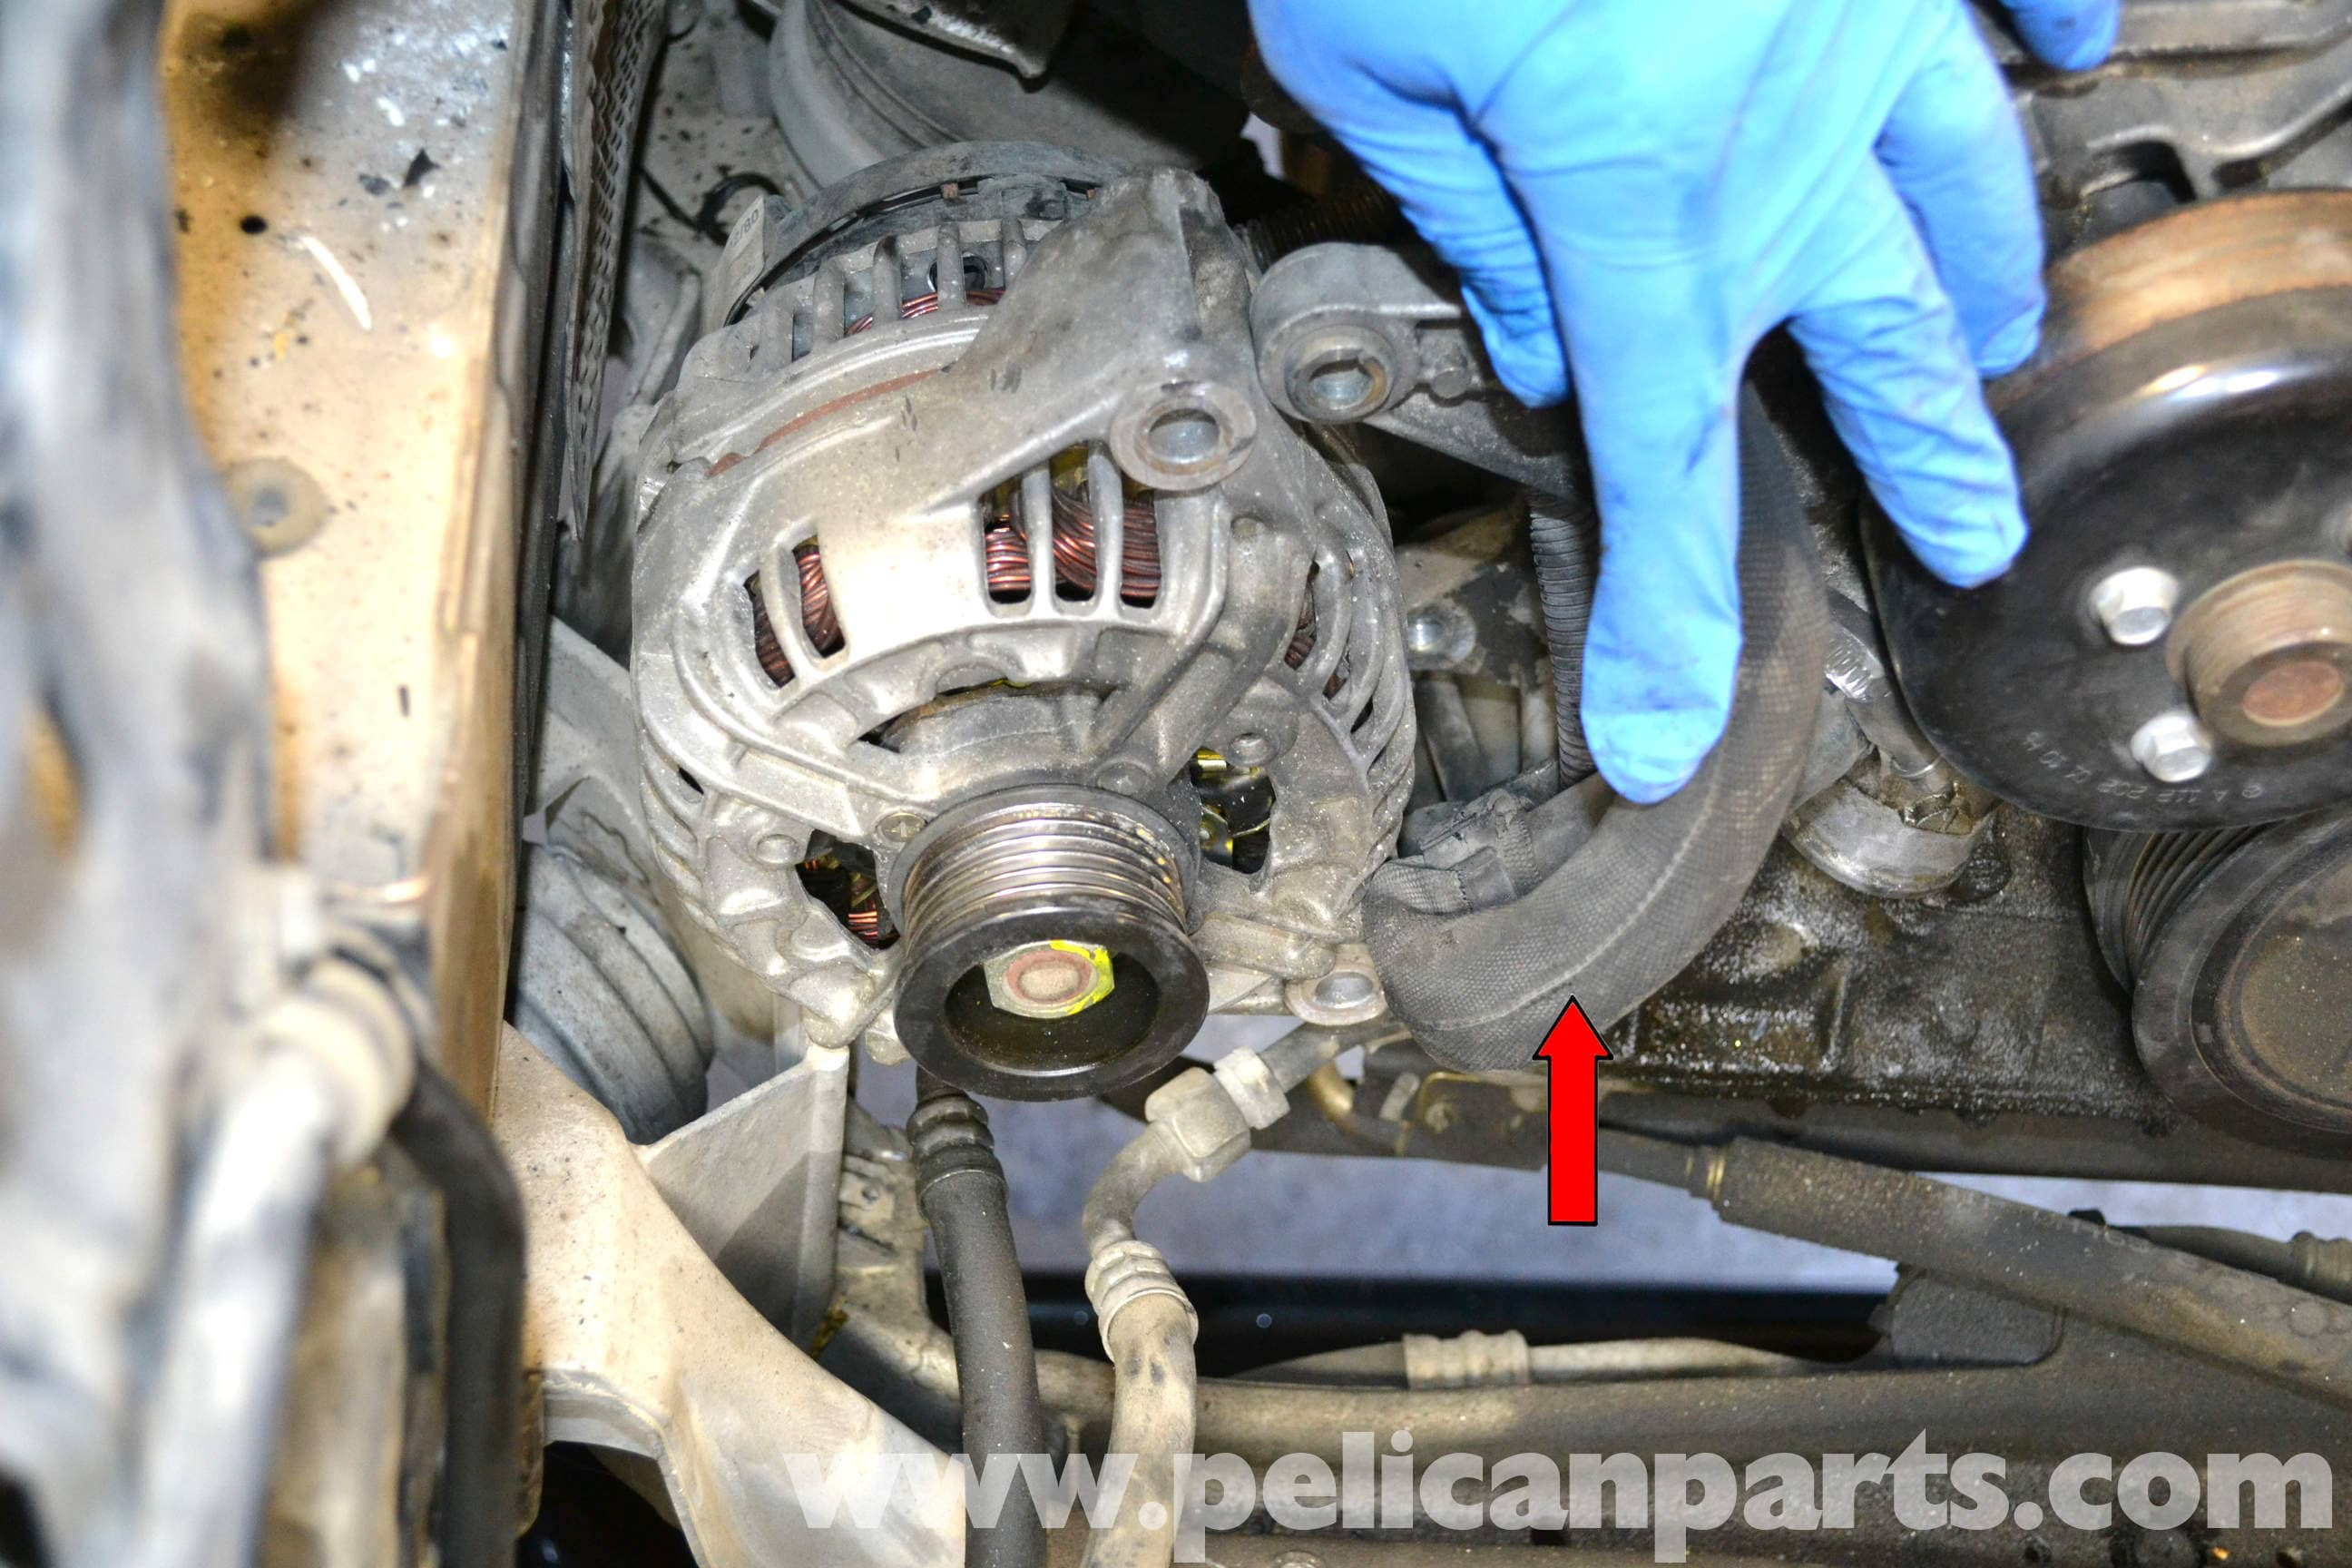 Mercedes-Benz W203 Timing Chain Tensioner Replacement - (2001-2007 on